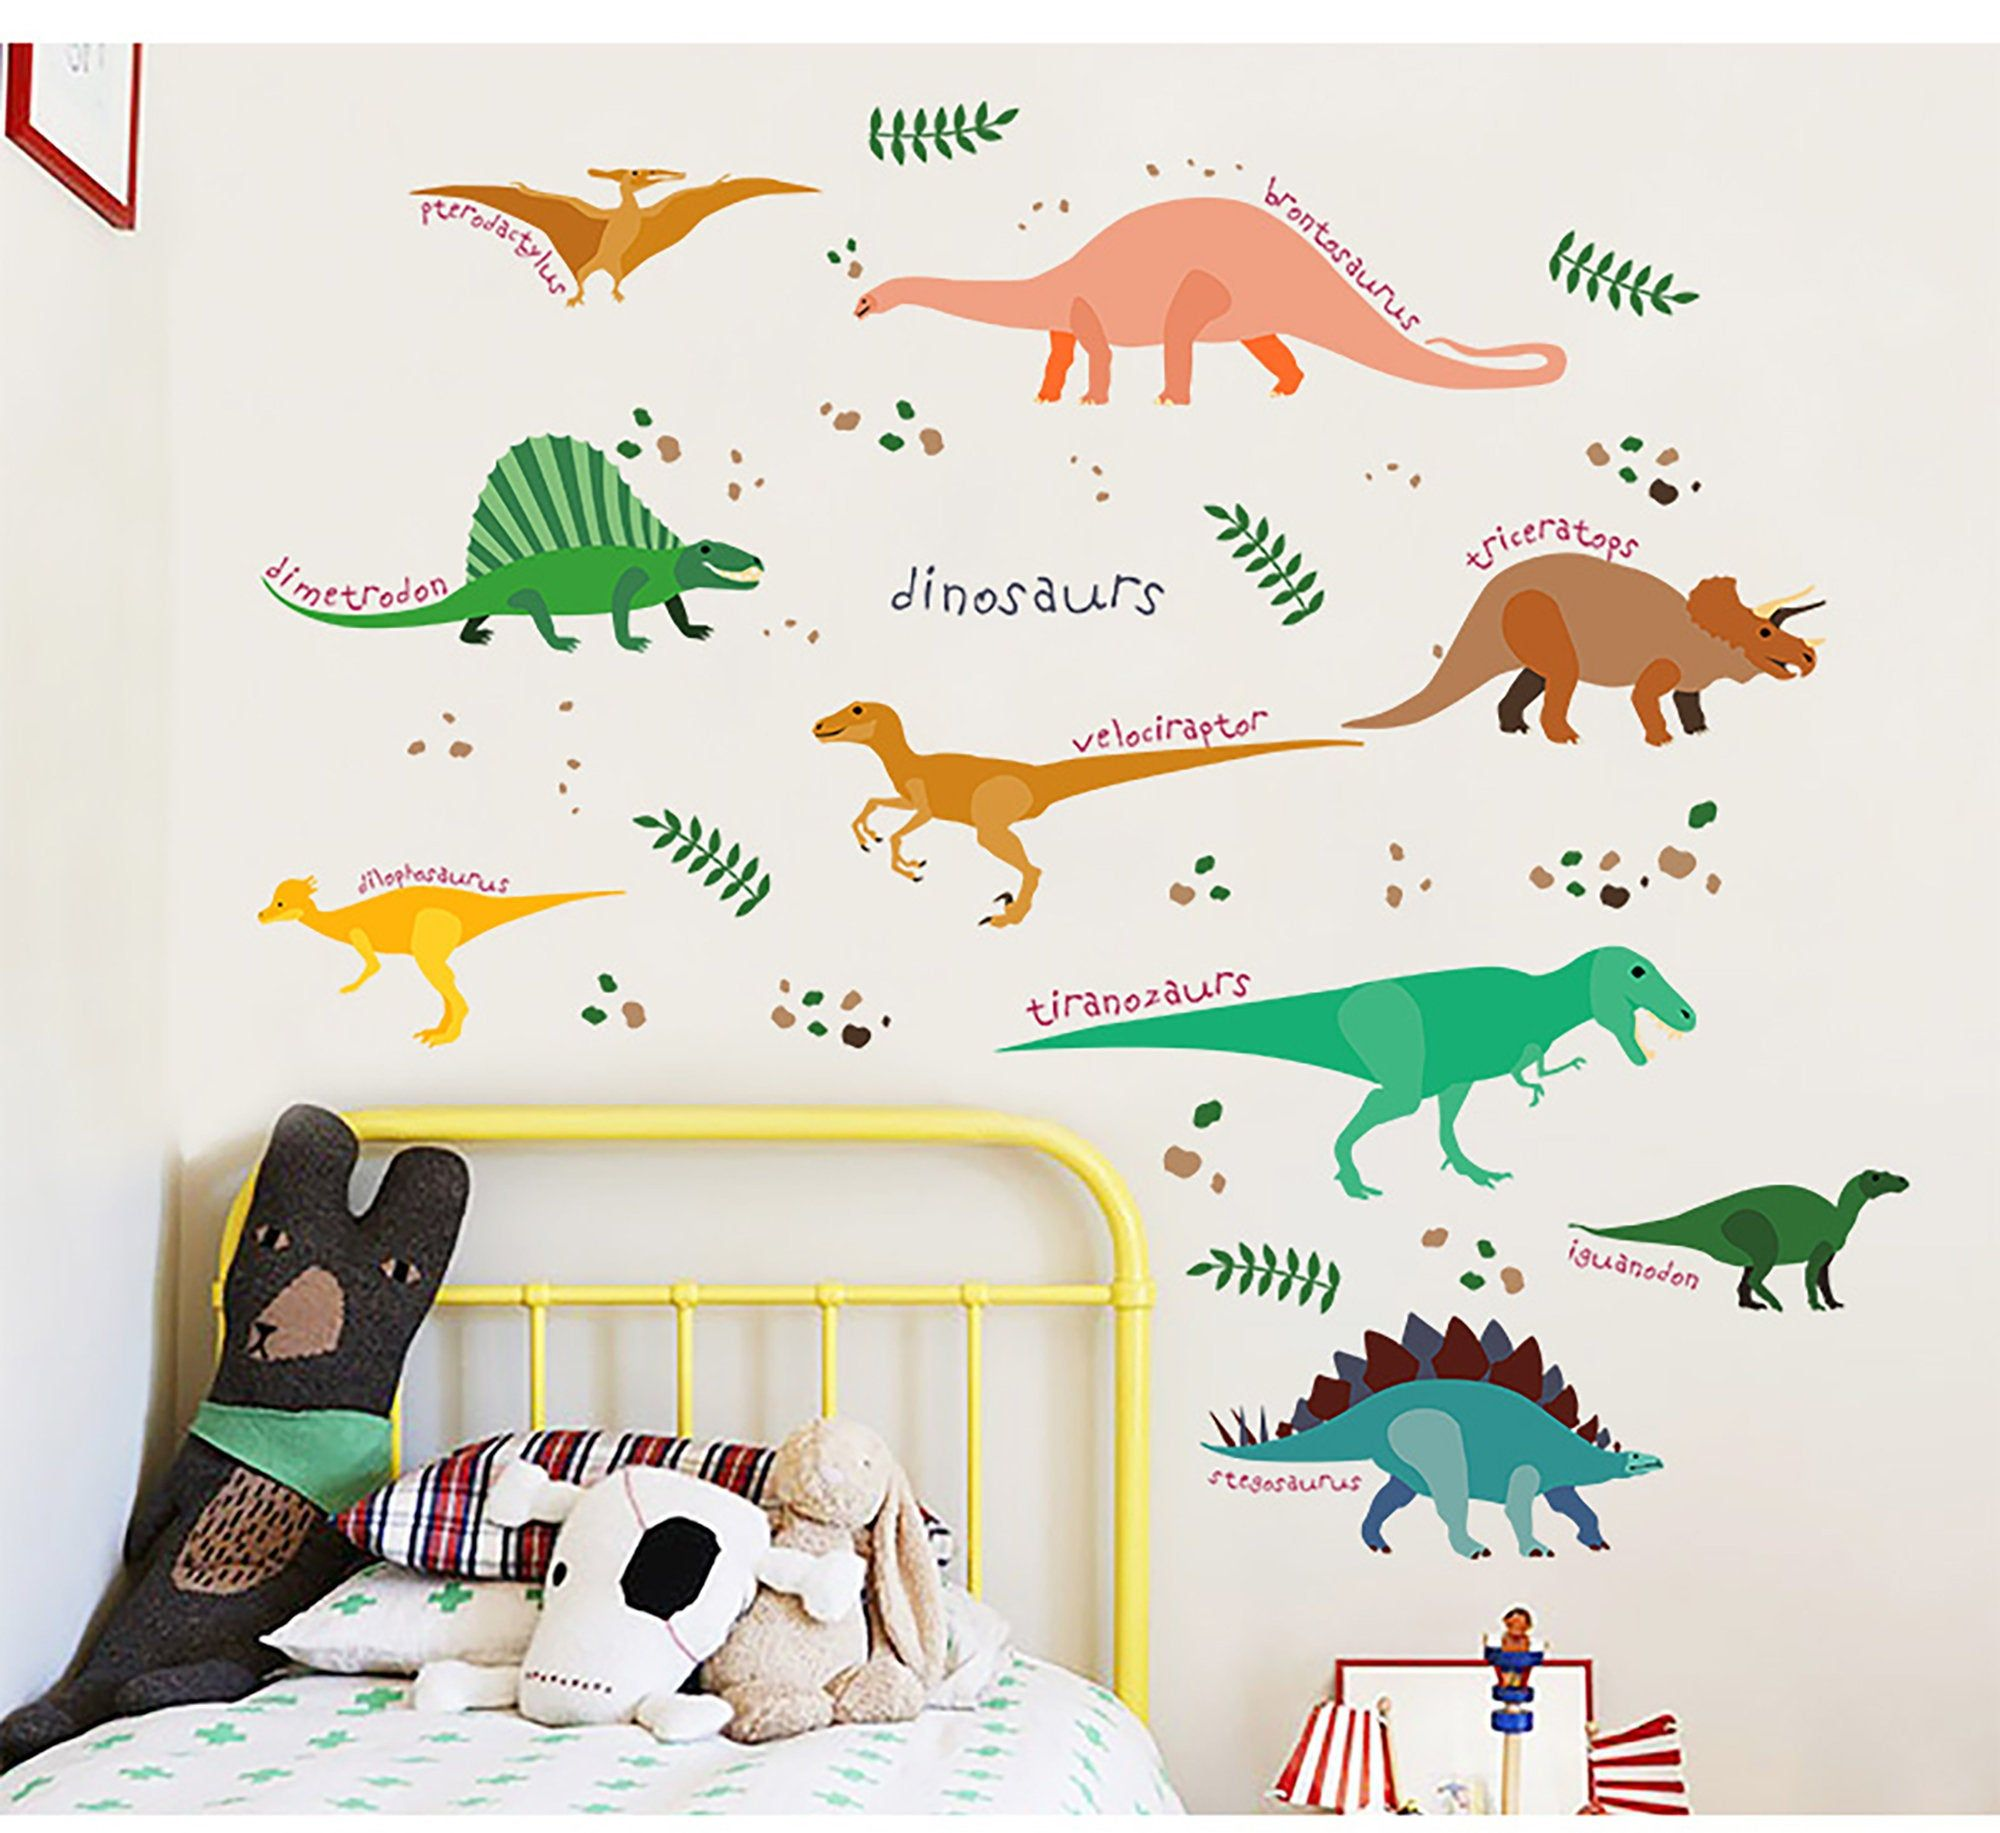 Kindergarten Wall Decoration Self Adhesive Wallpaper Cartoon